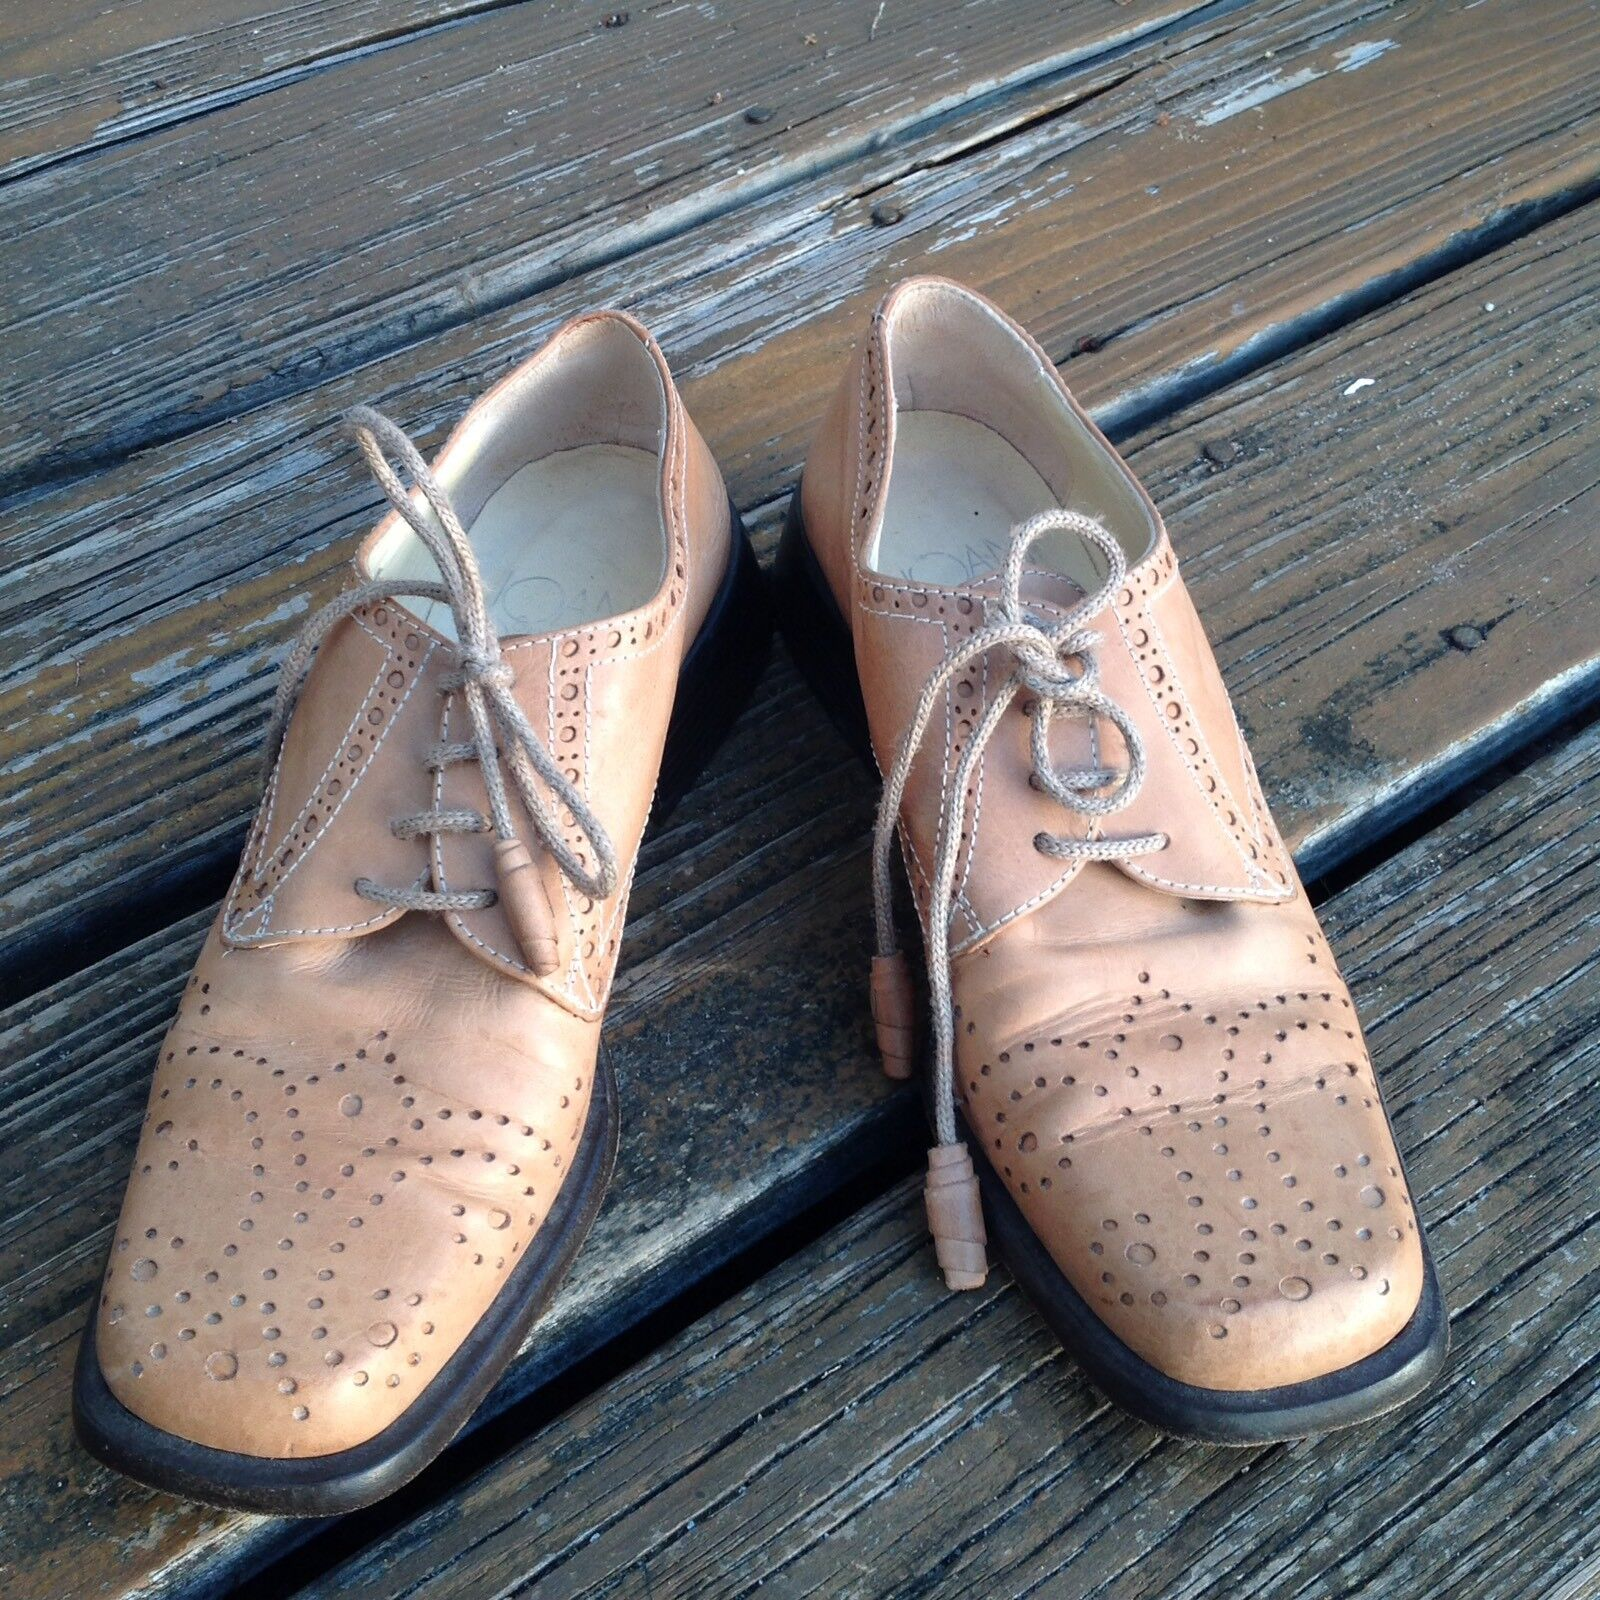 Joan  David Light Brown Tan Wingtip Oxfords Brogue Shoes 8 Tassel Pelle